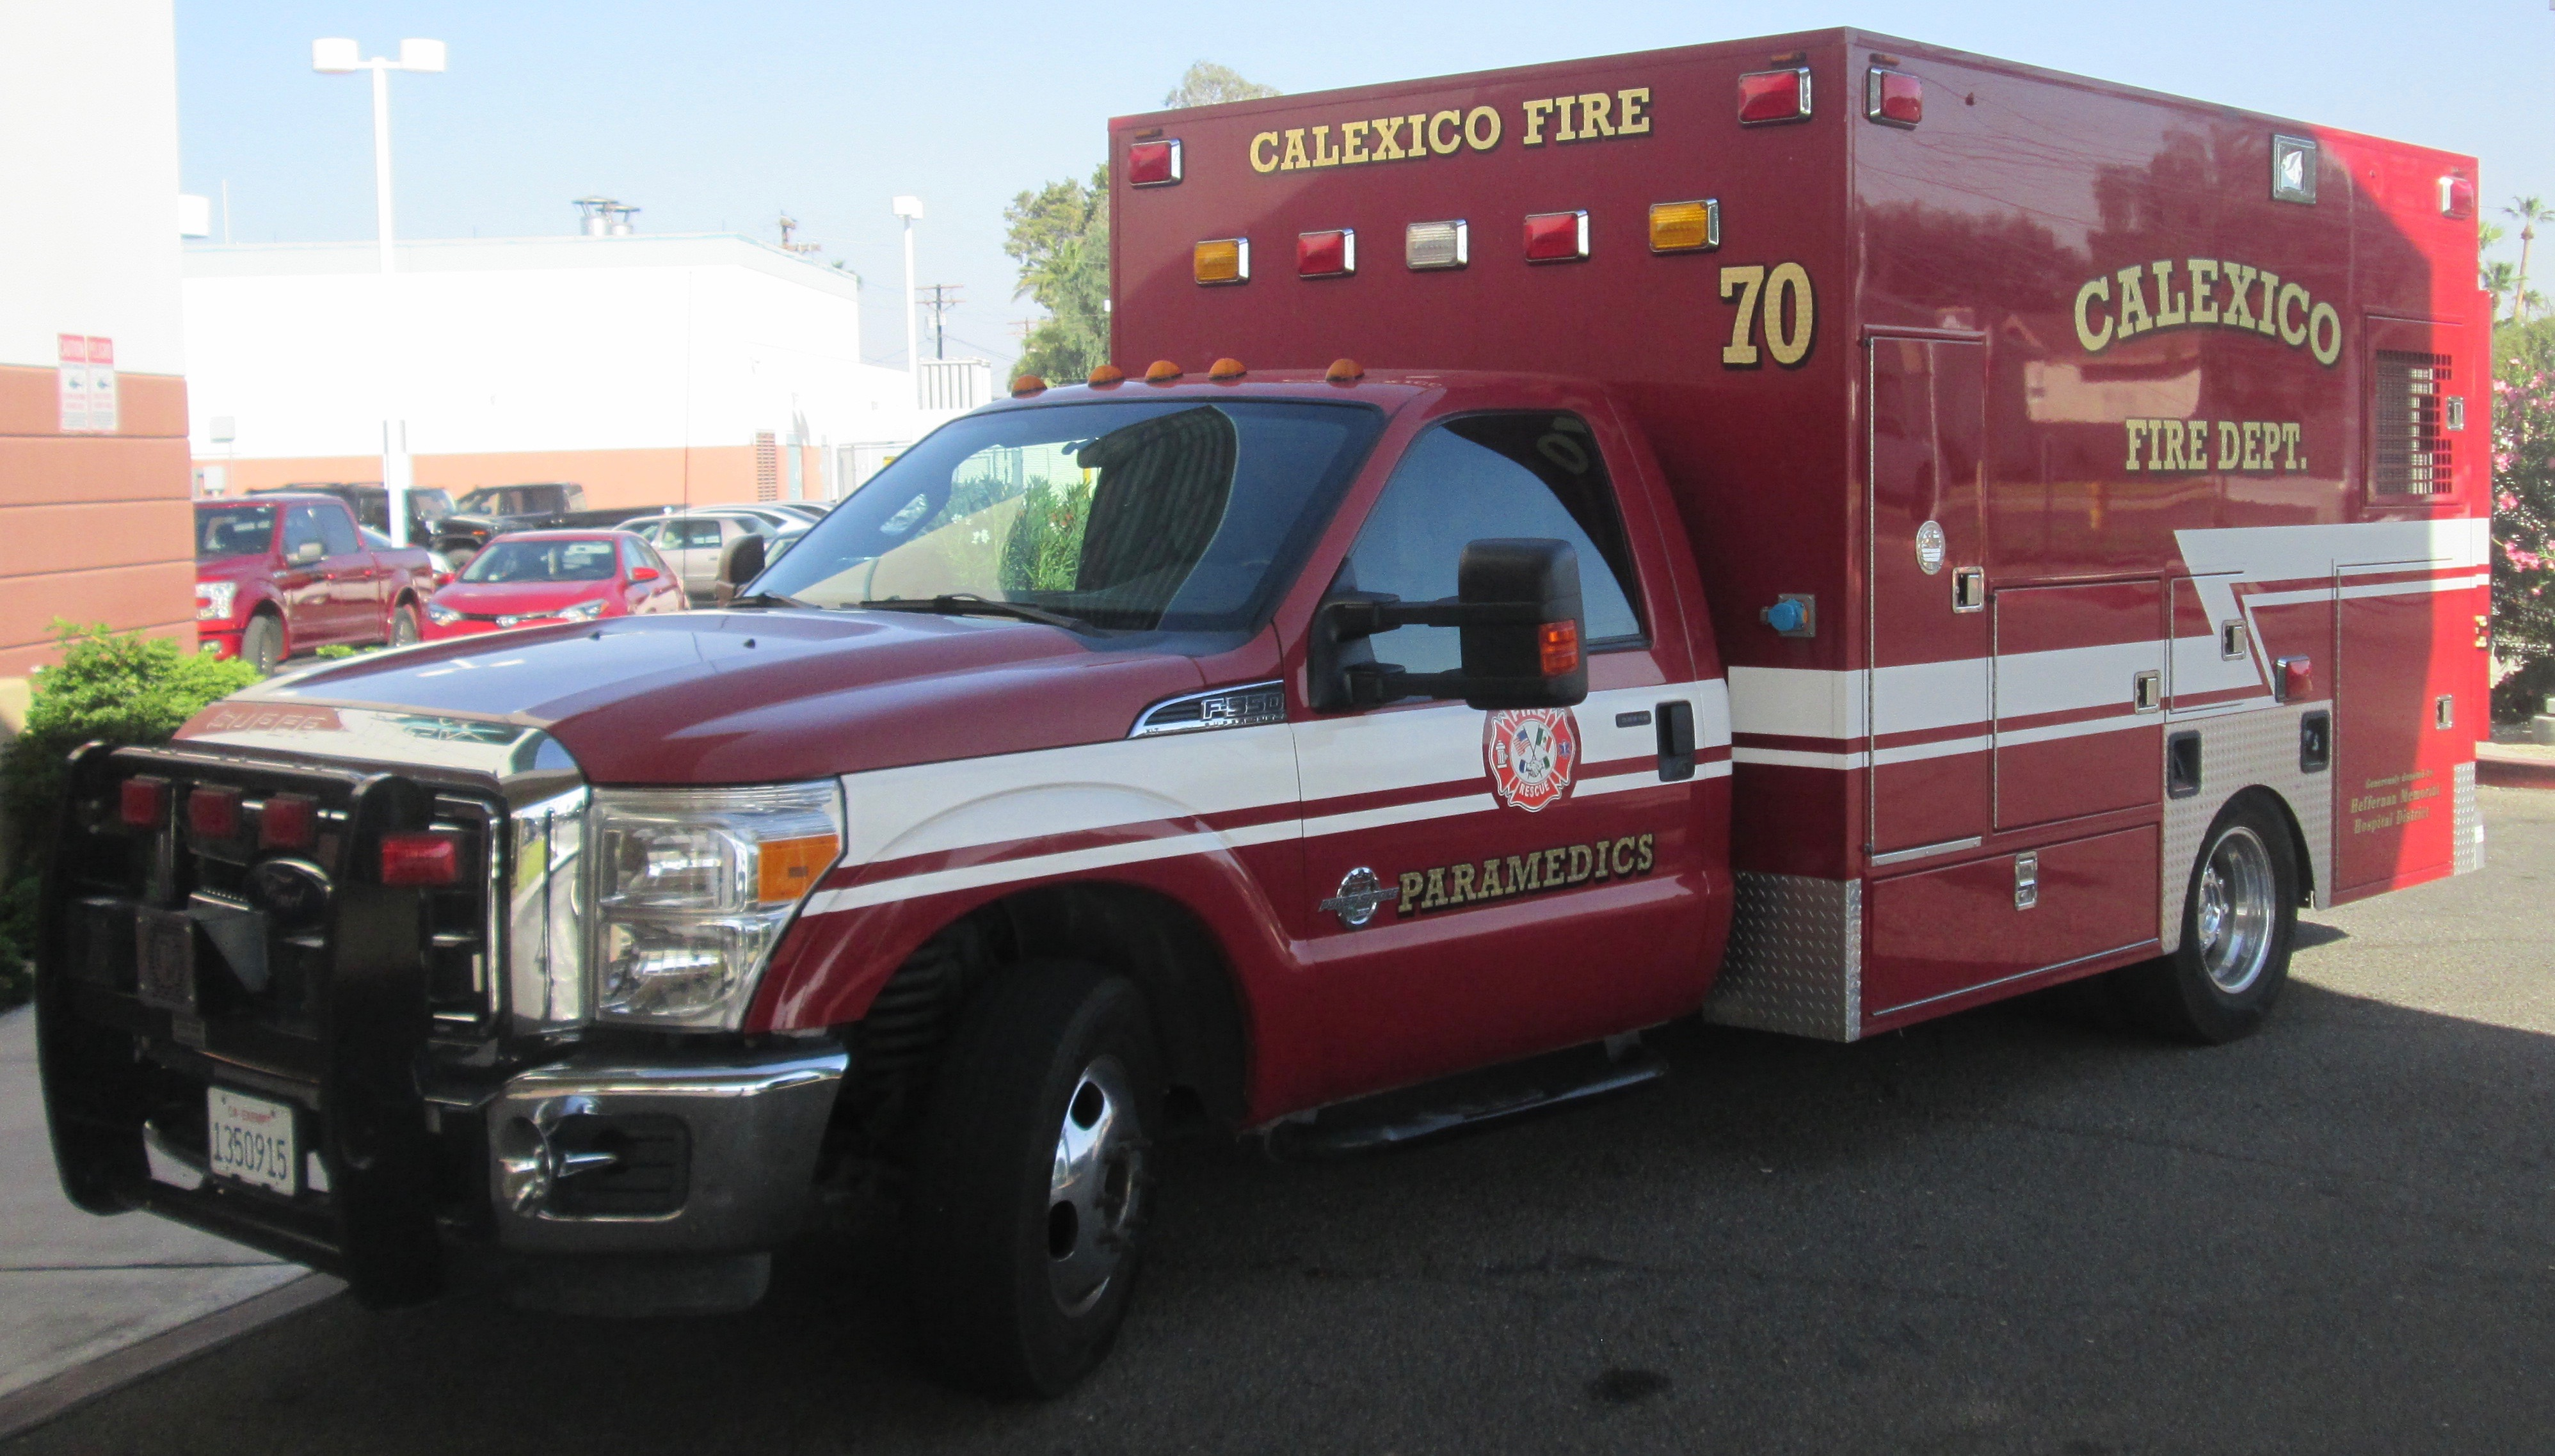 Fire Department Stations & Apparatus - City of Calexico